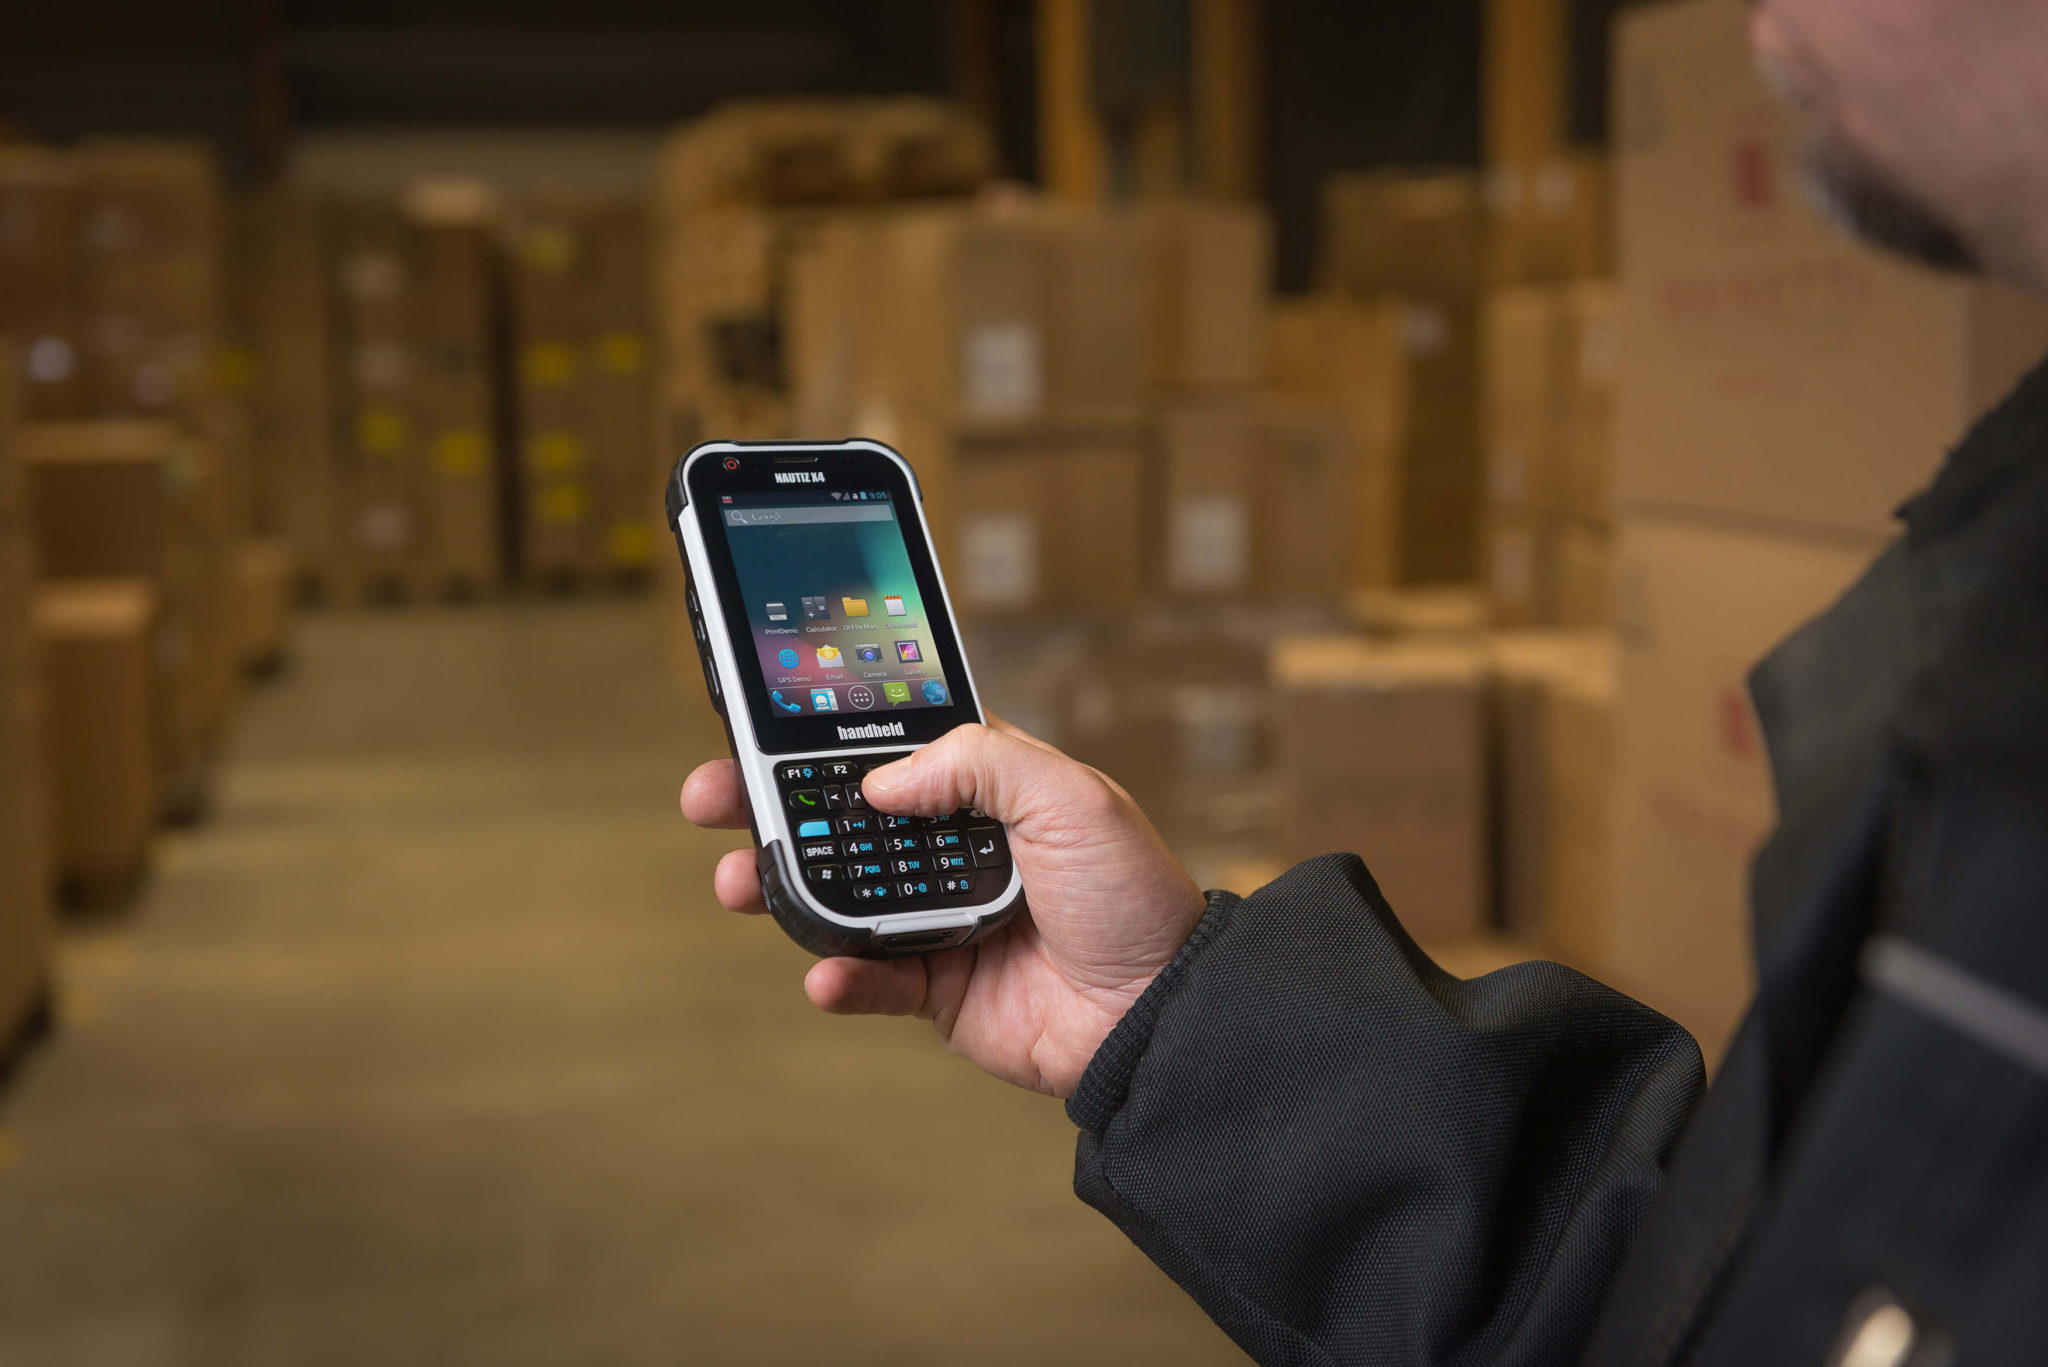 nautiz-x4-ip65-handheld-scanner-warehouse-android